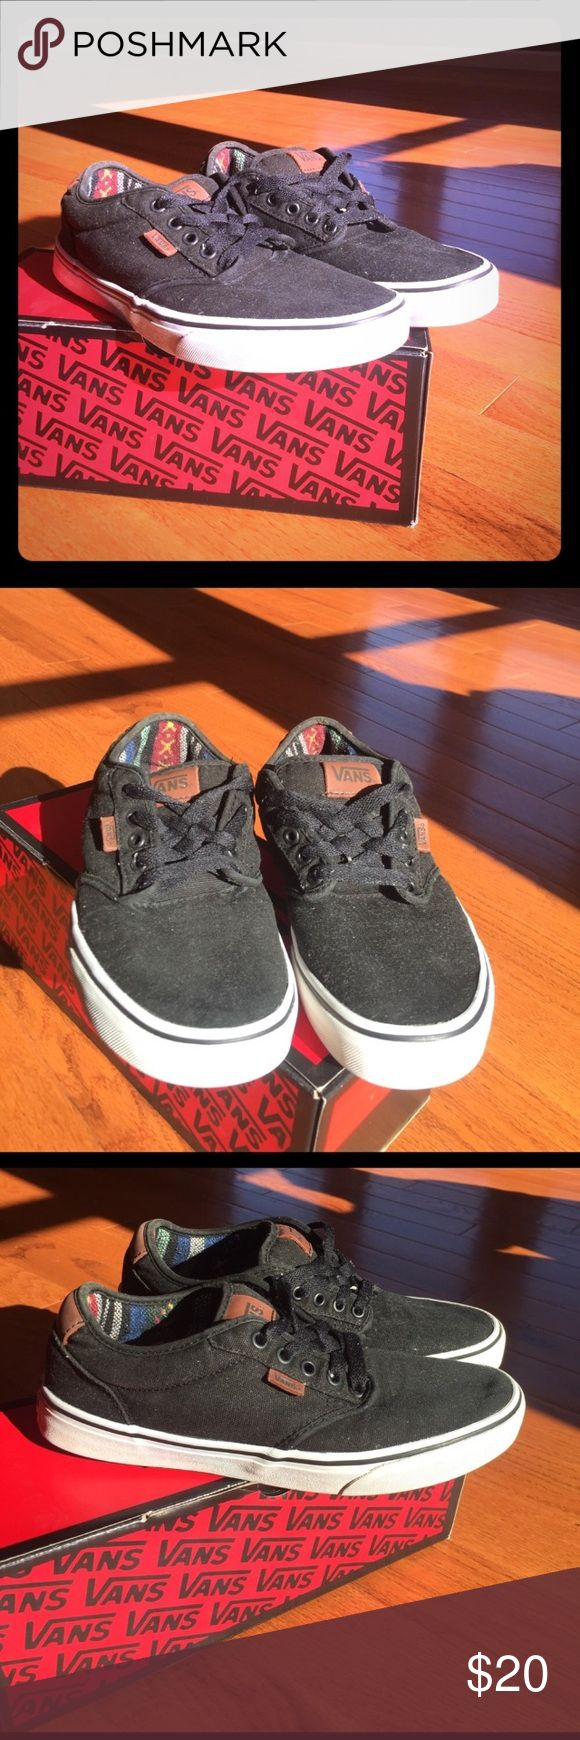 Vans Black/White/Tan shoes - Size 8.5 Vans skate shoes with padded sides and tongue. Design on the inside. Worn a bit but still in great condition and completely clean. Comes with box. Offer a price if interested! Vans Shoes Sneakers